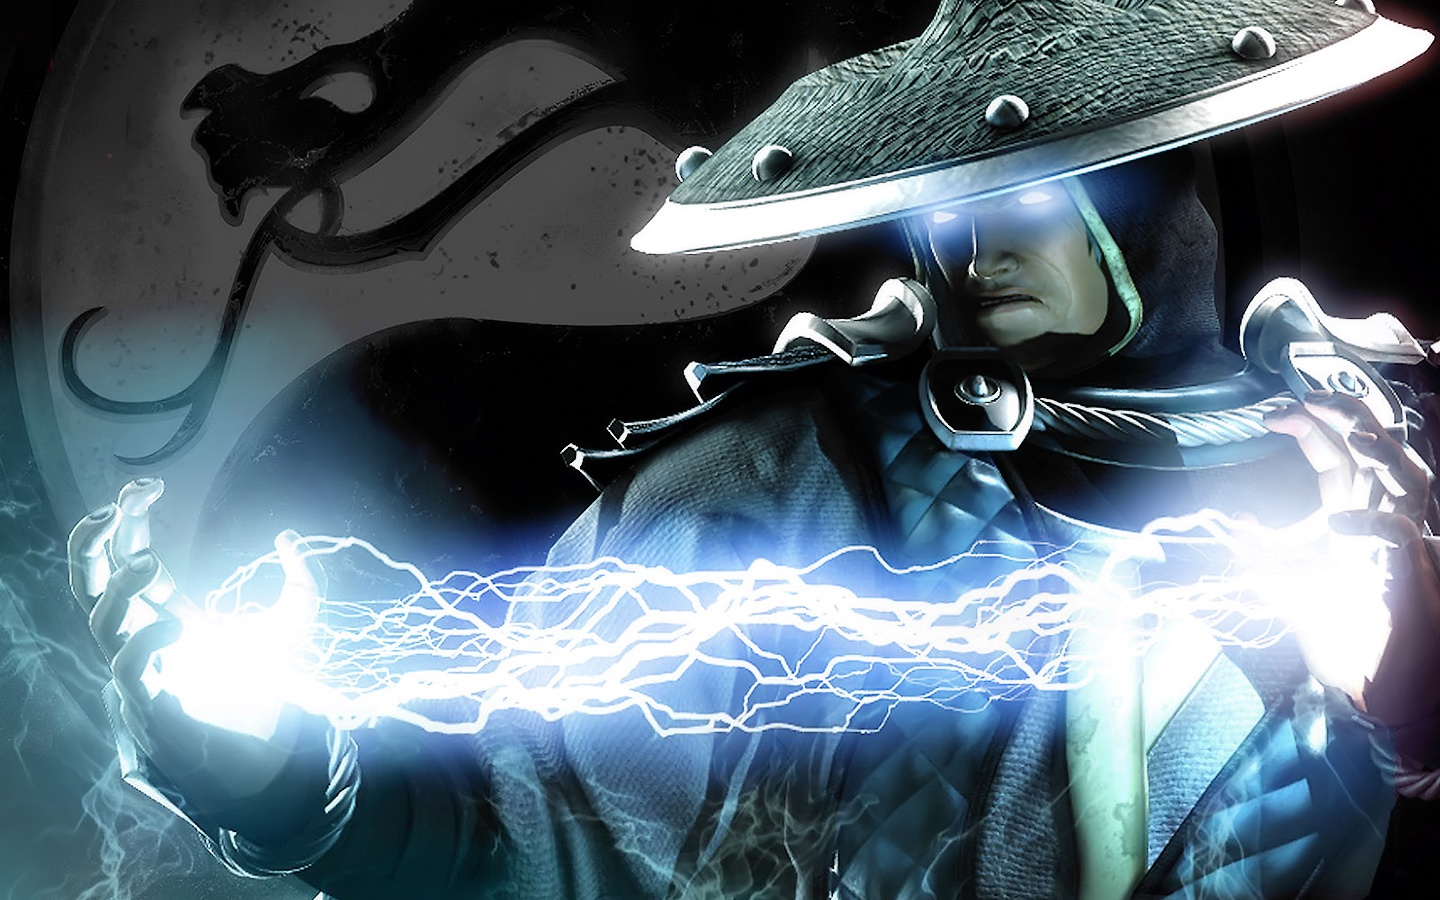 Kombat Wallpaper Raiden wallpaper Mortal Kombat Wallpaper Raiden hd 1440x900